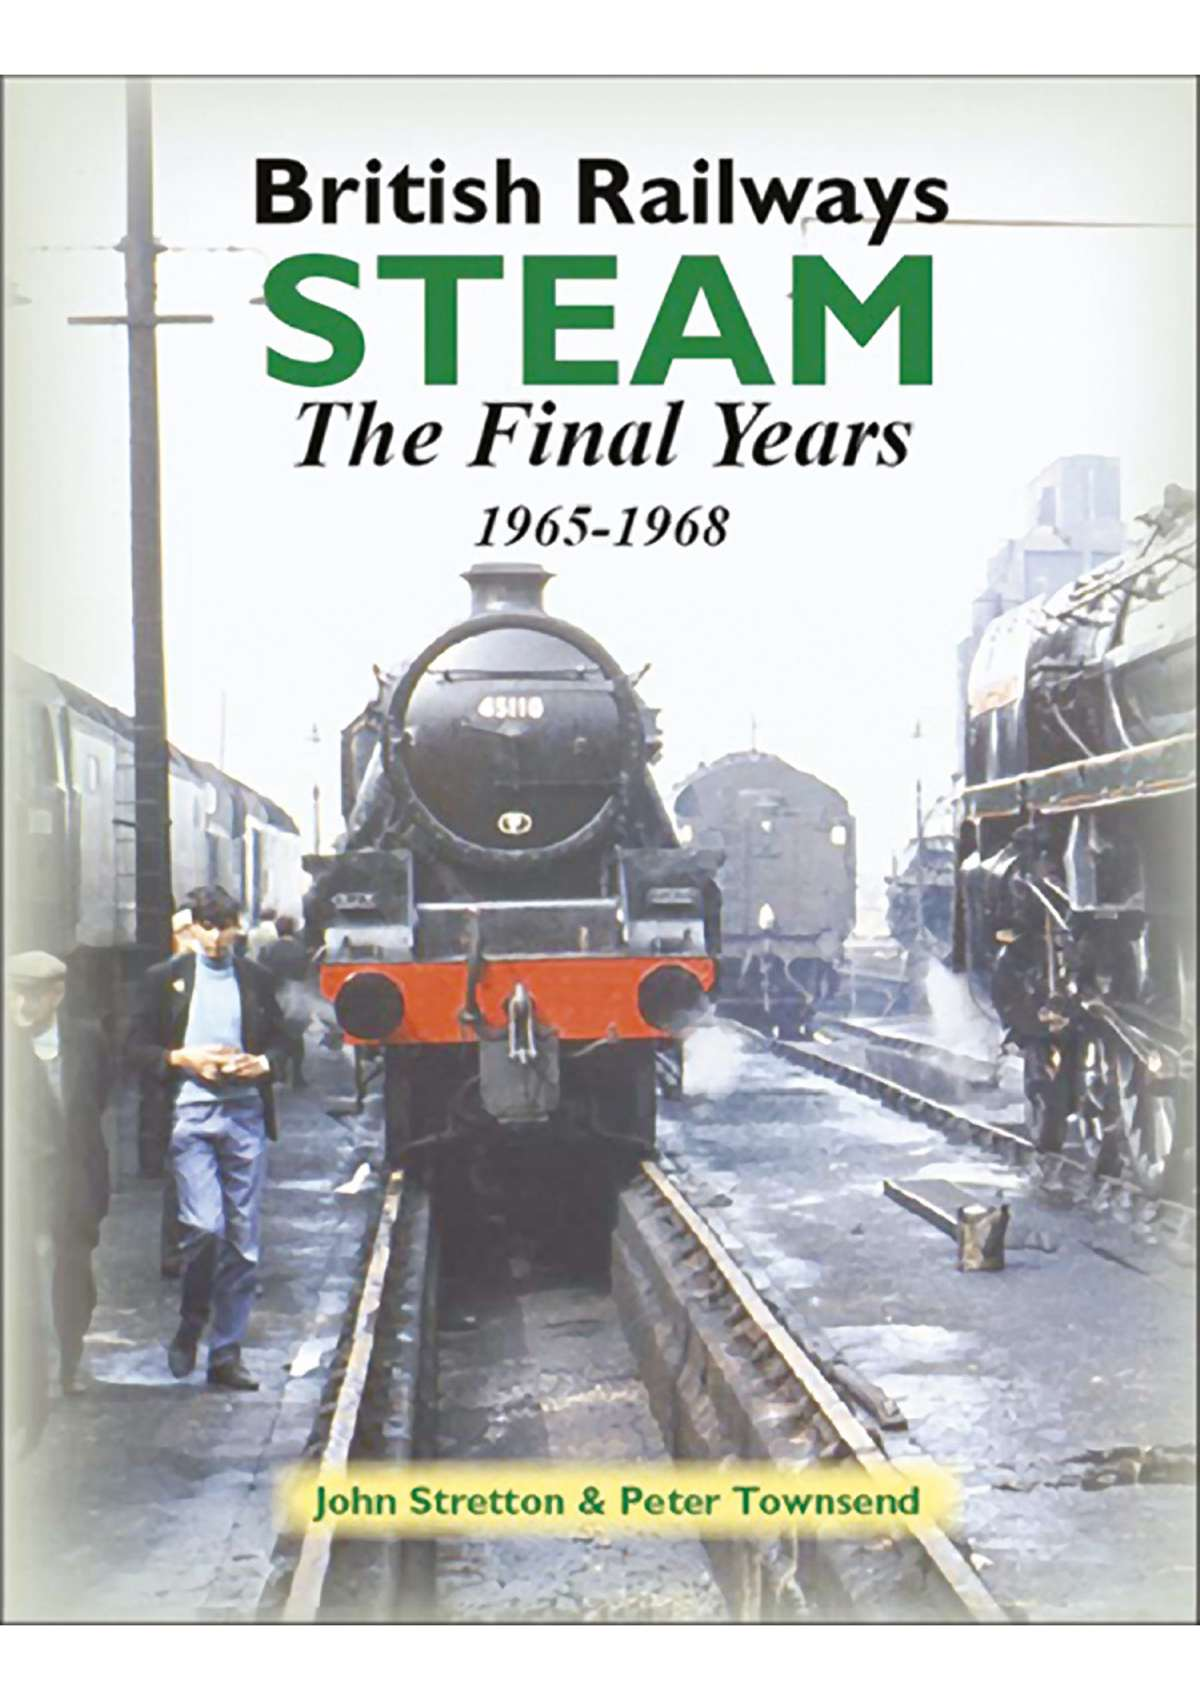 3207 - British Railways Steam: The Final Years, 1965-1968